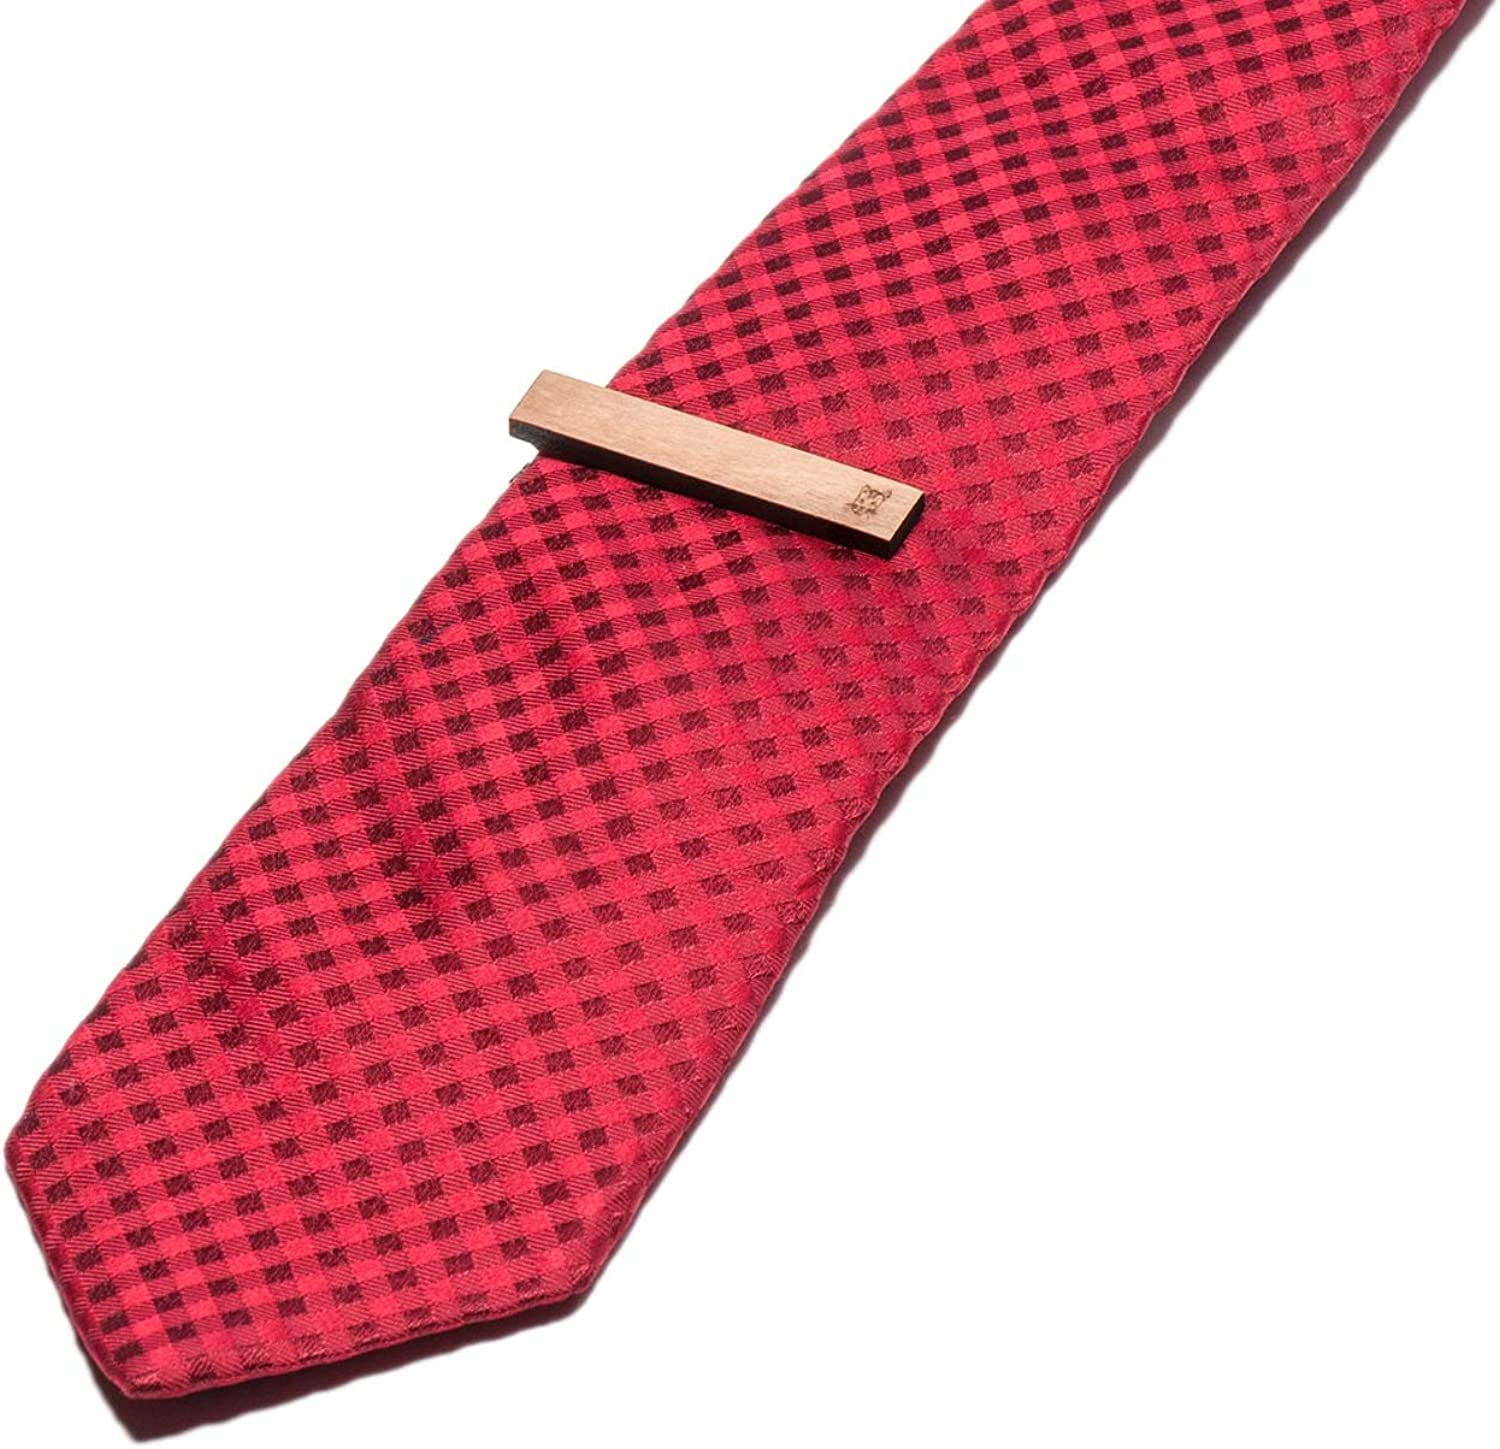 Wooden Accessories Company Wooden Tie Clips with Laser Engraved Punk Cat Design Cherry Wood Tie Bar Engraved in The USA